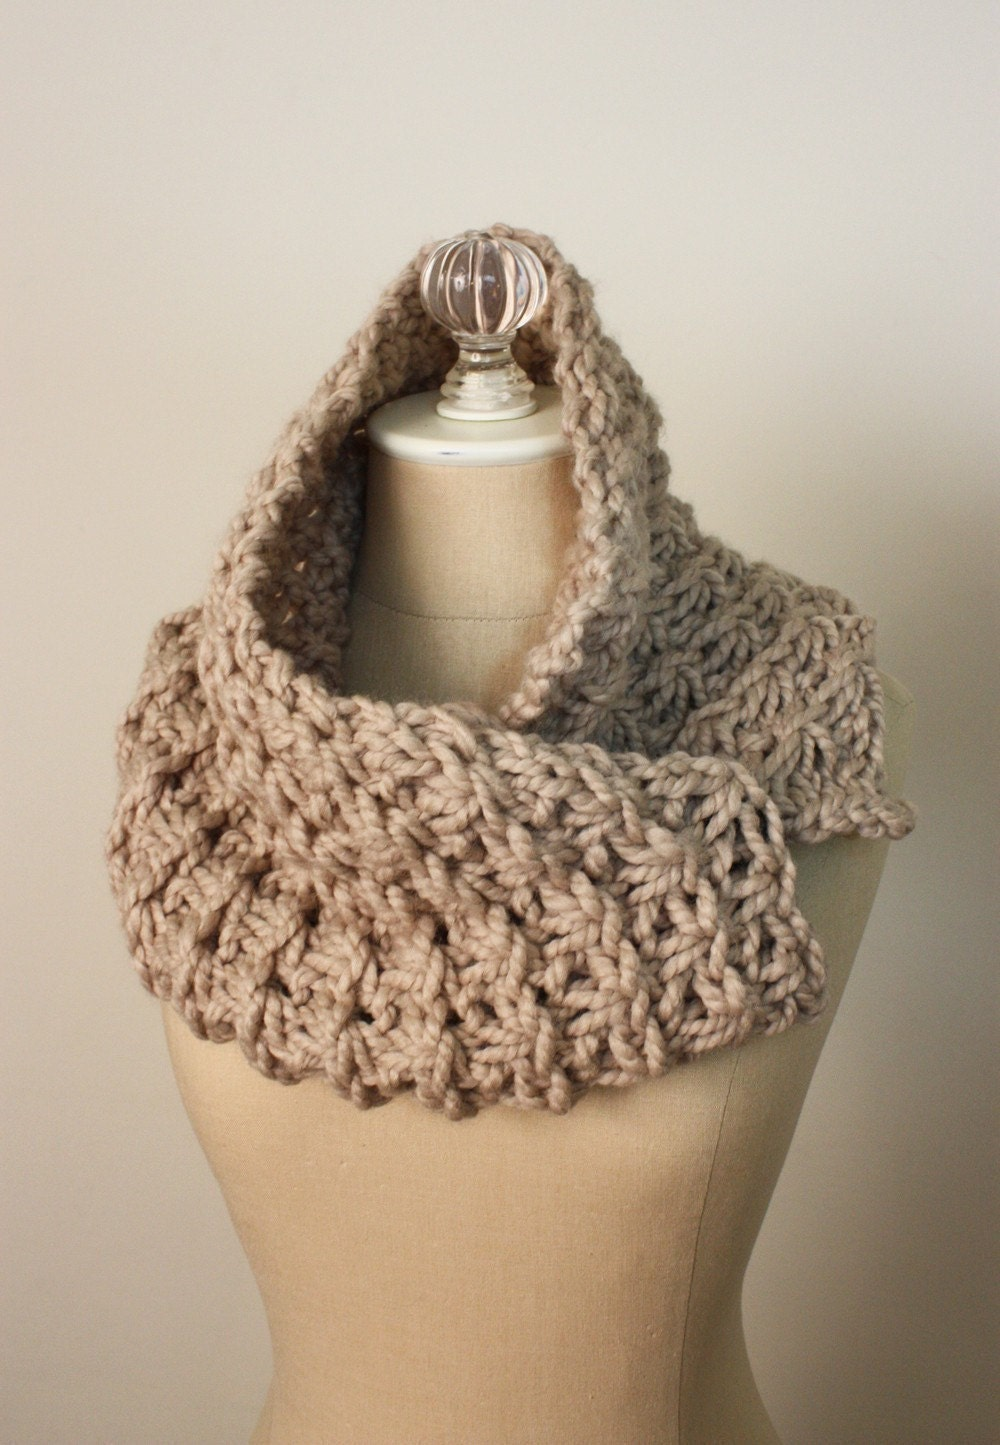 Free Knitting Patterns For Women s Cowls : Cowl Pattern / Knitting Pattern / Chunky Bulky Oversized Quick